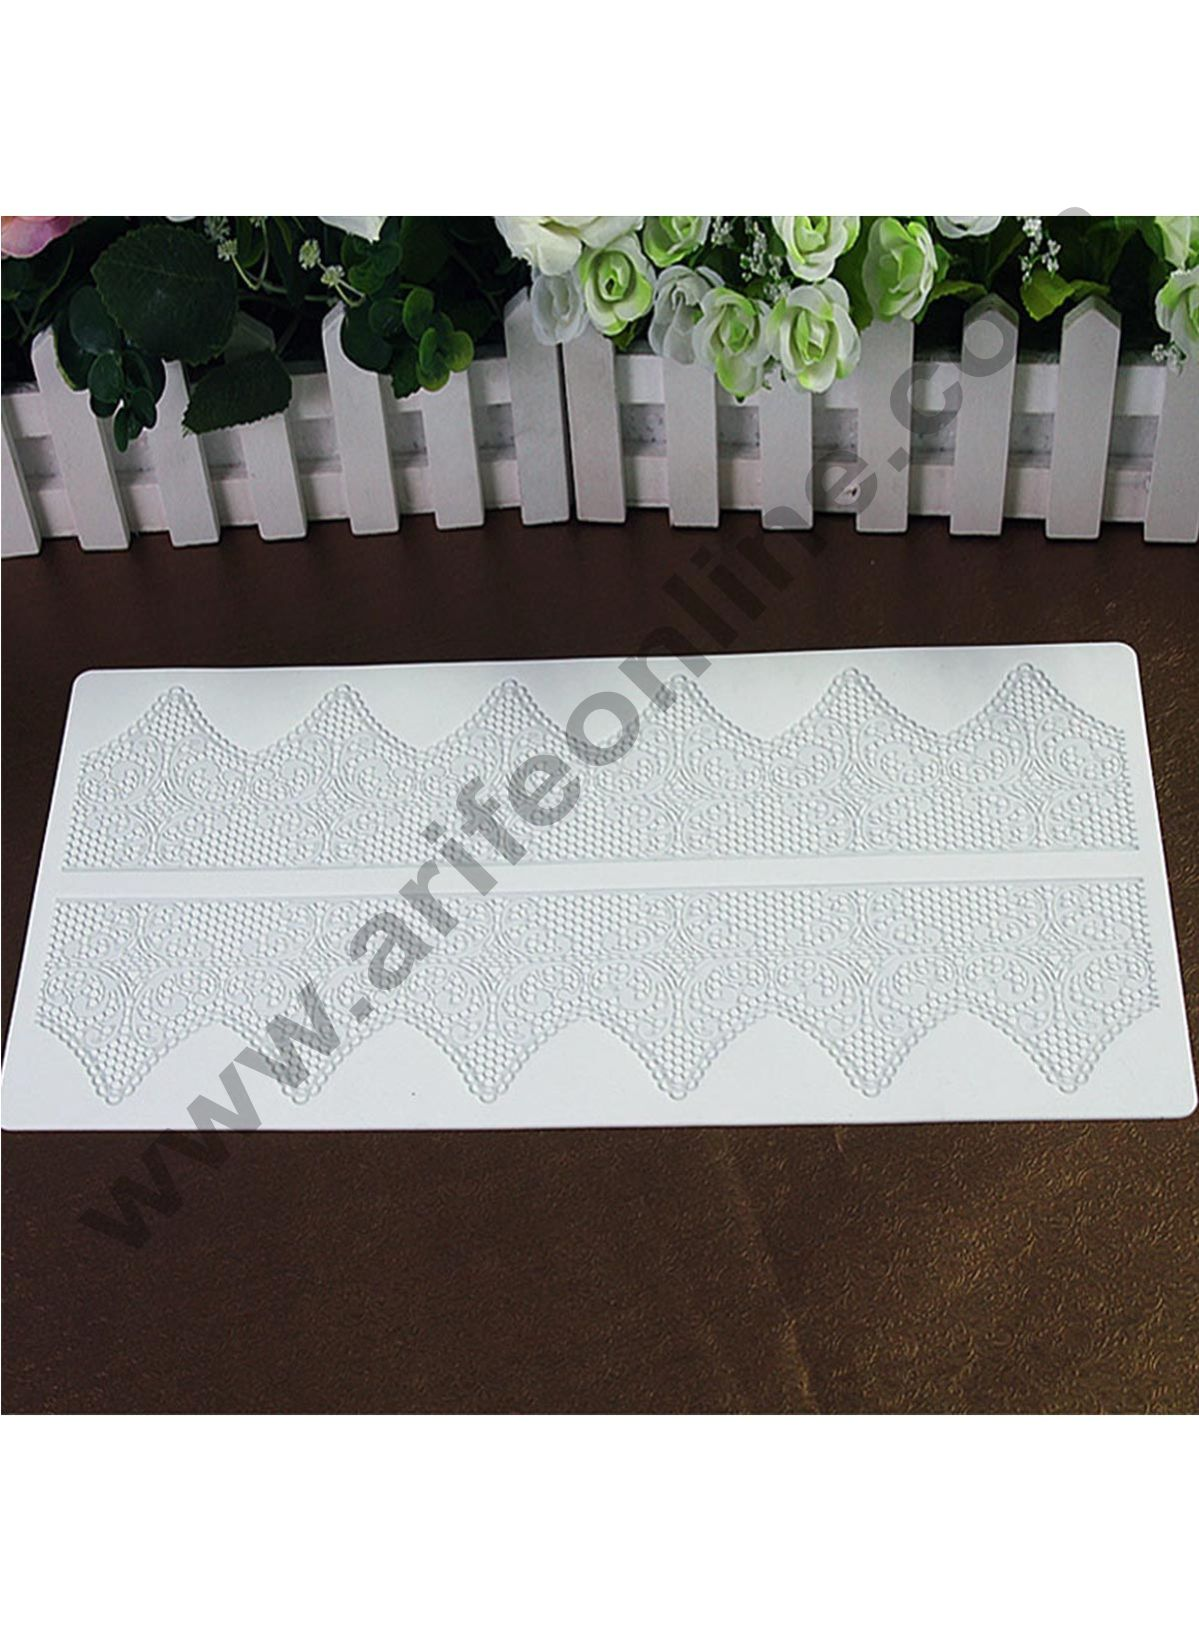 Cake Decor Silicone Mold Fondant Silicone Lace Mat Cake Edge Decoration Cake Decorating Pastry Tools Baking Mat Pad Sheet